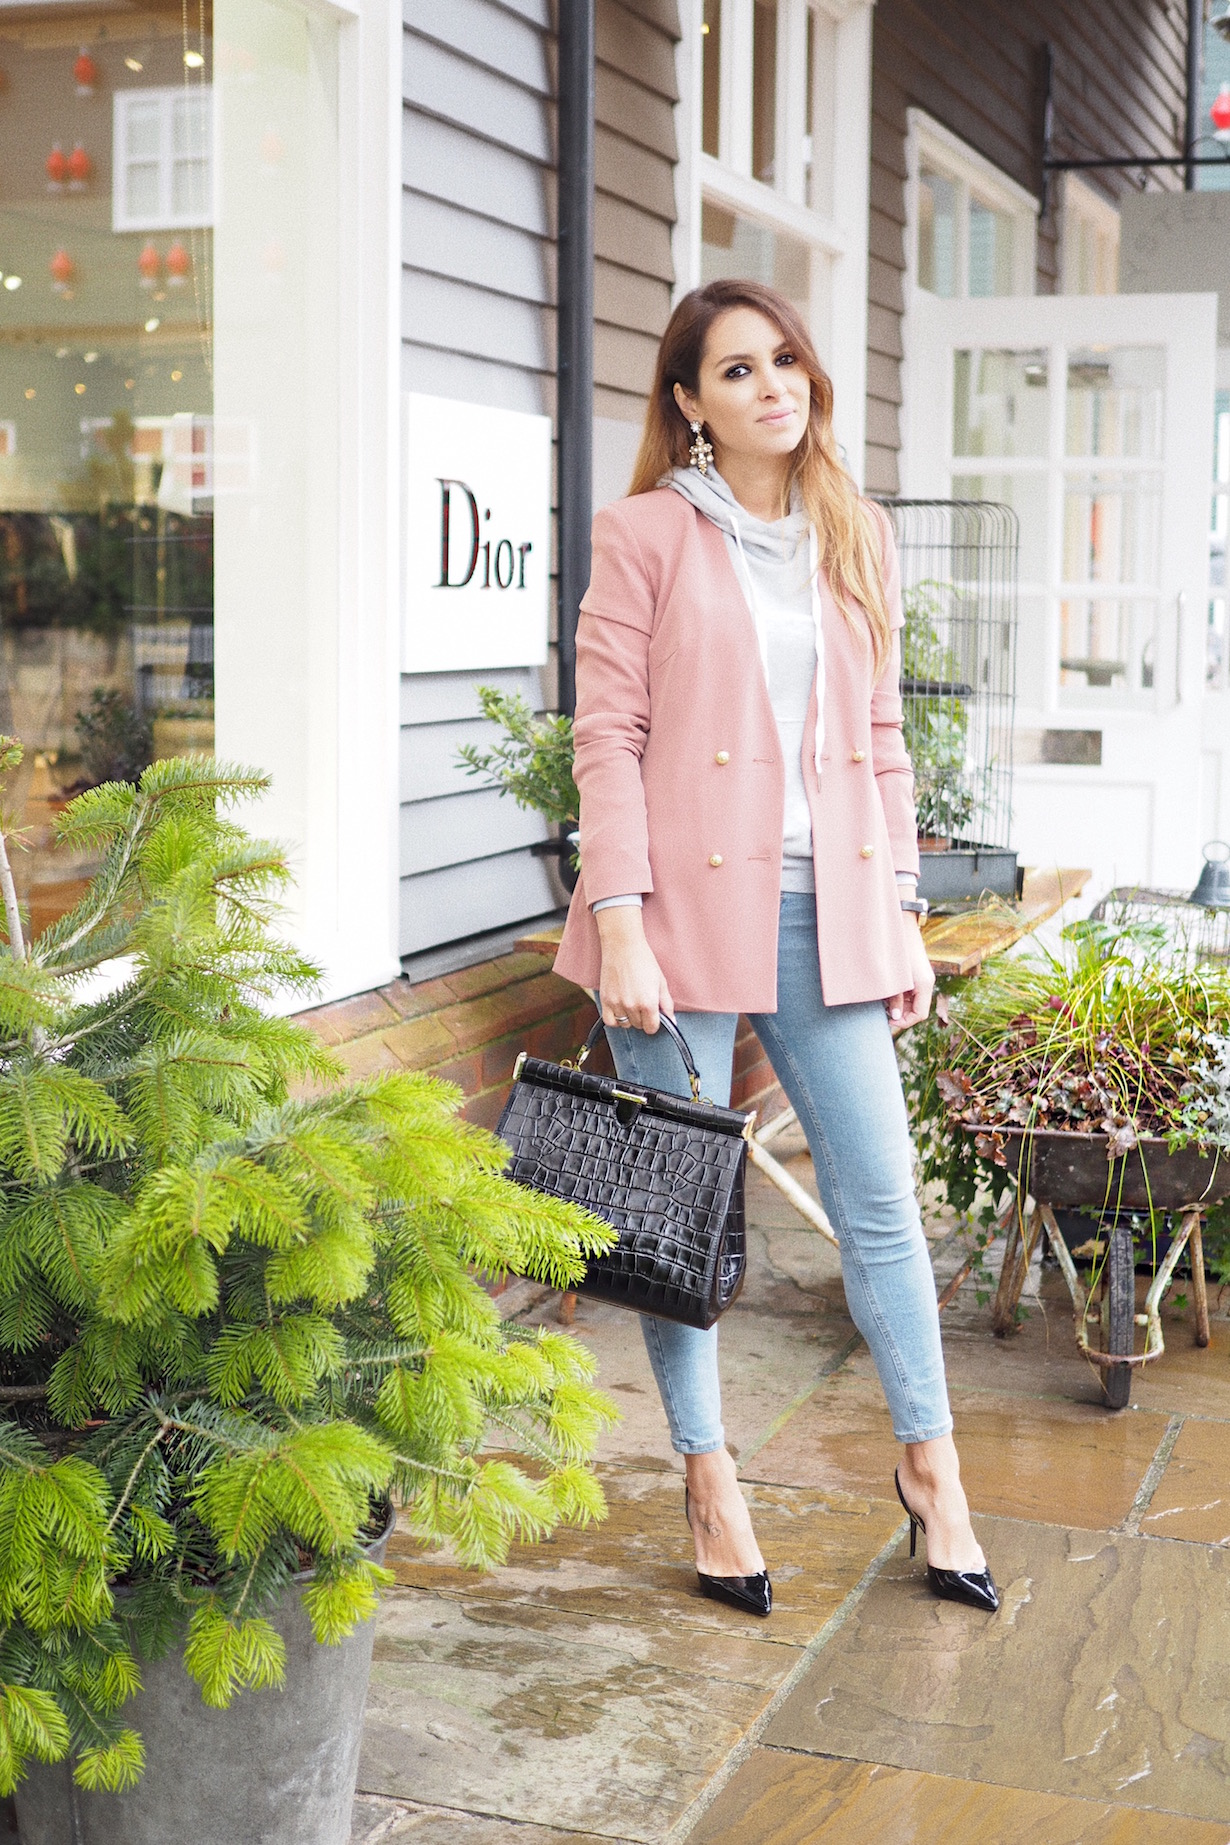 bicester village uk london christian dior outlet